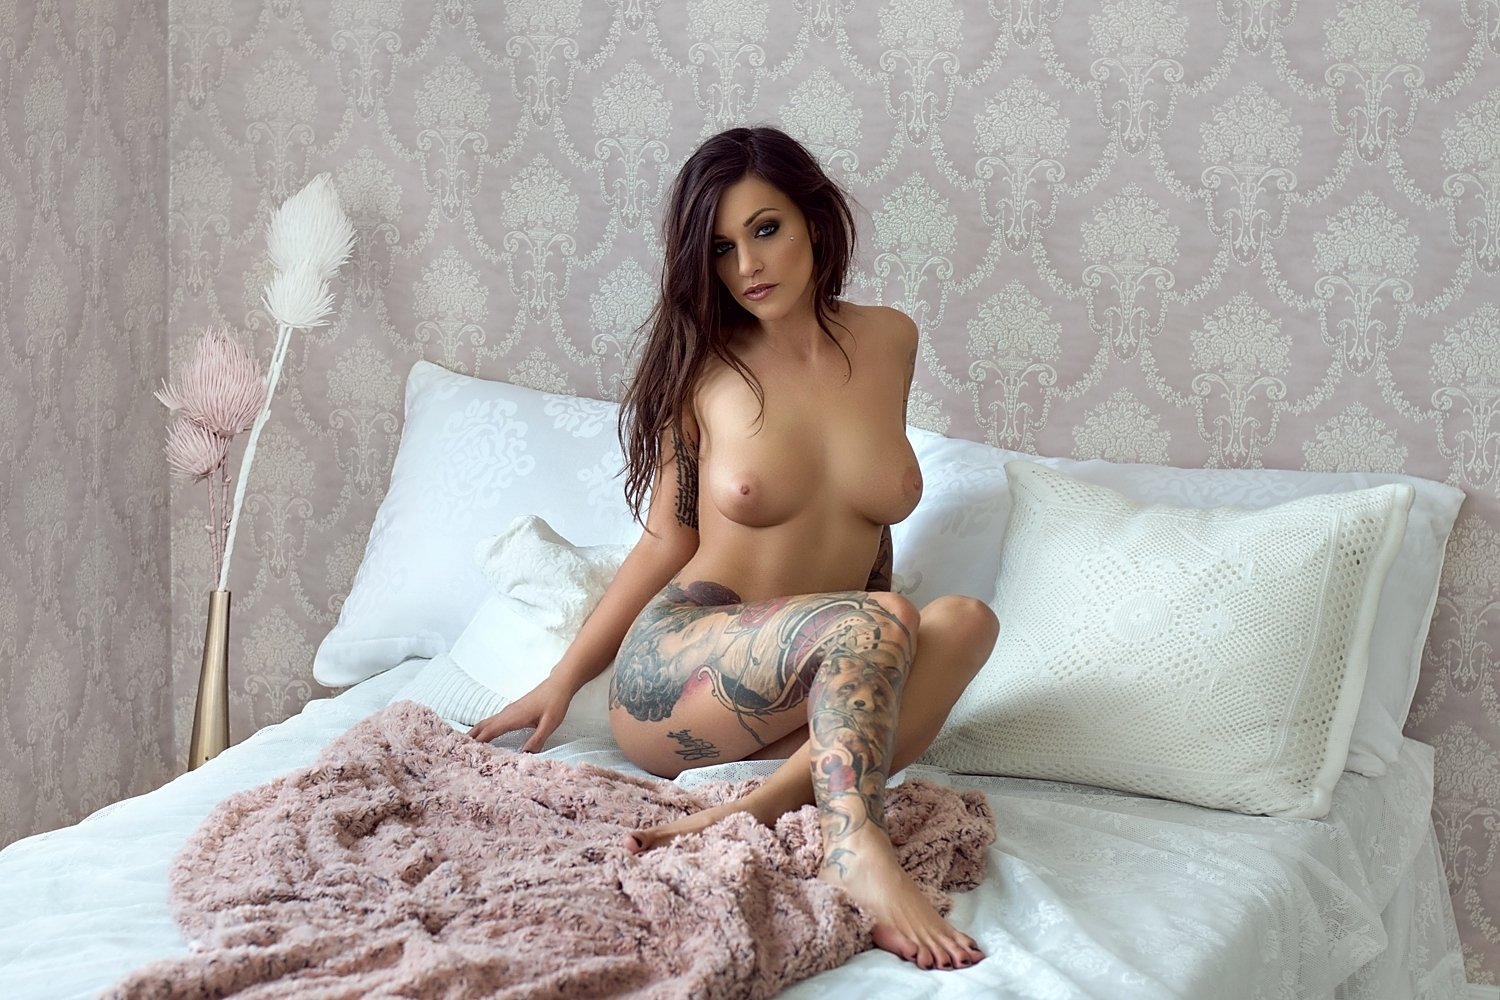 model, nude, naked, glamour, woman, female, colour, body, sexy, sensual, natural light, curves, portrait, erotica, fine art, tattoo, bedroom,, Lajos Csáki